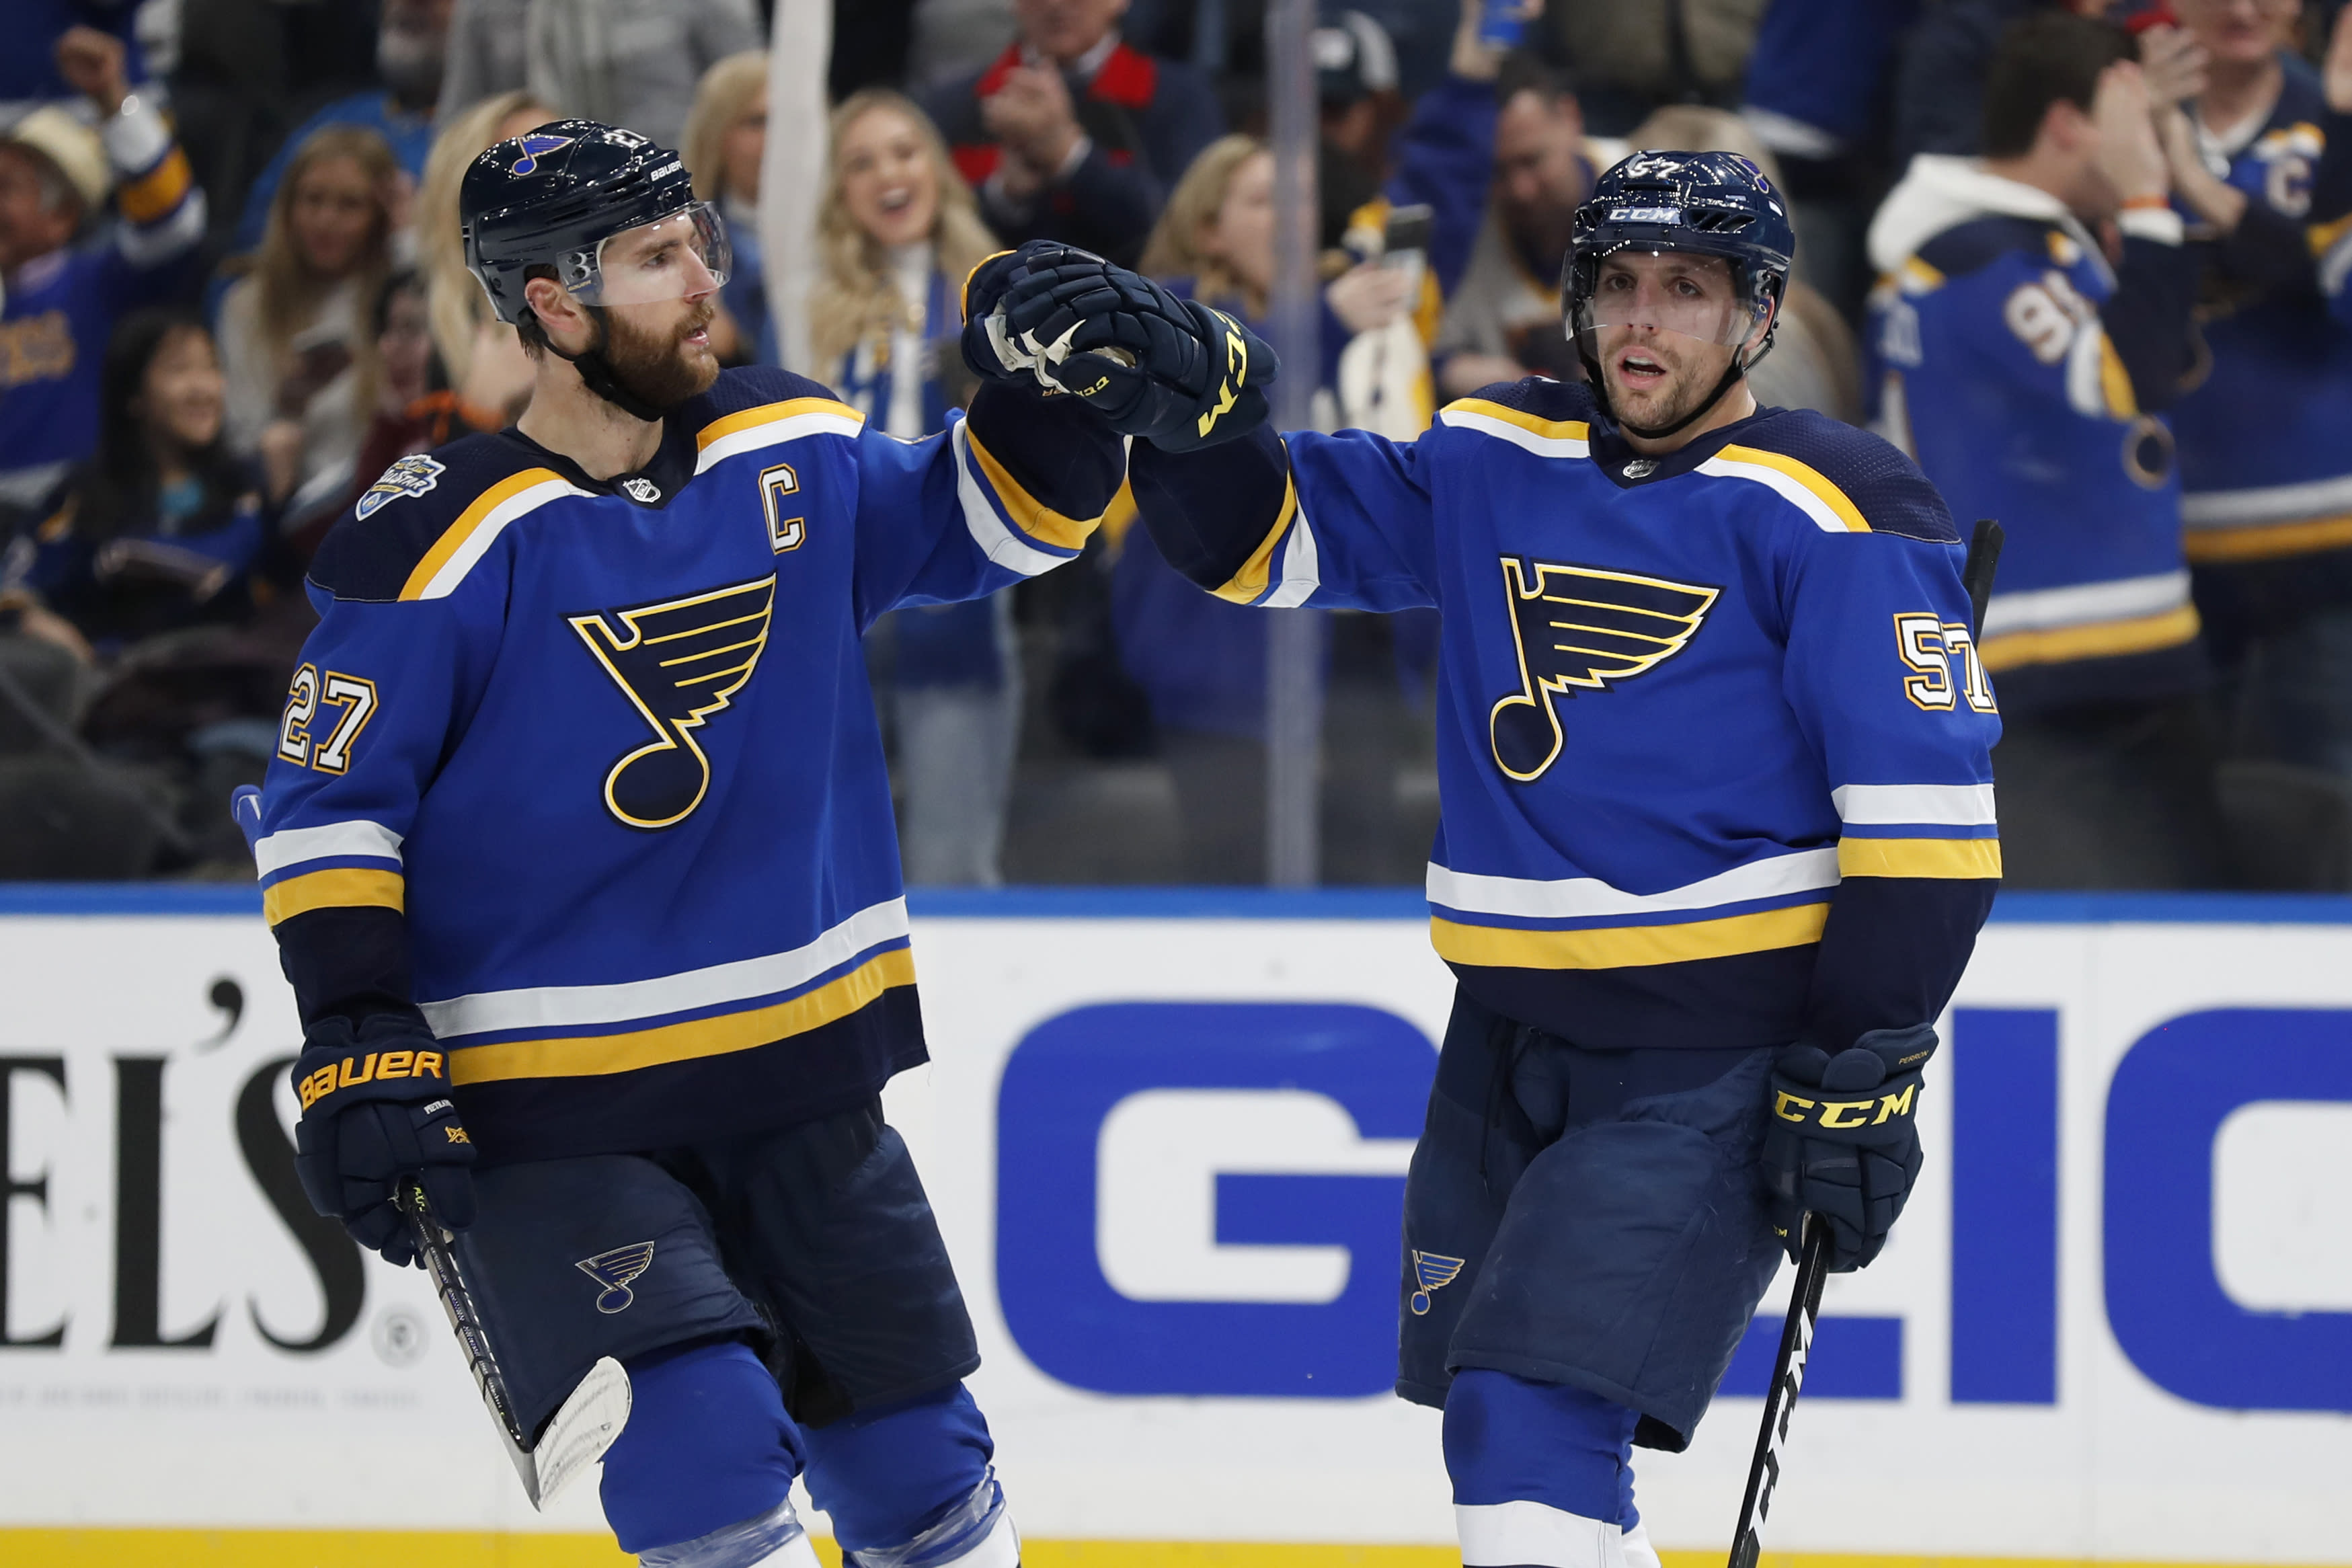 Perron scores hat trick, Blues end Avalanche's nine-game point streak